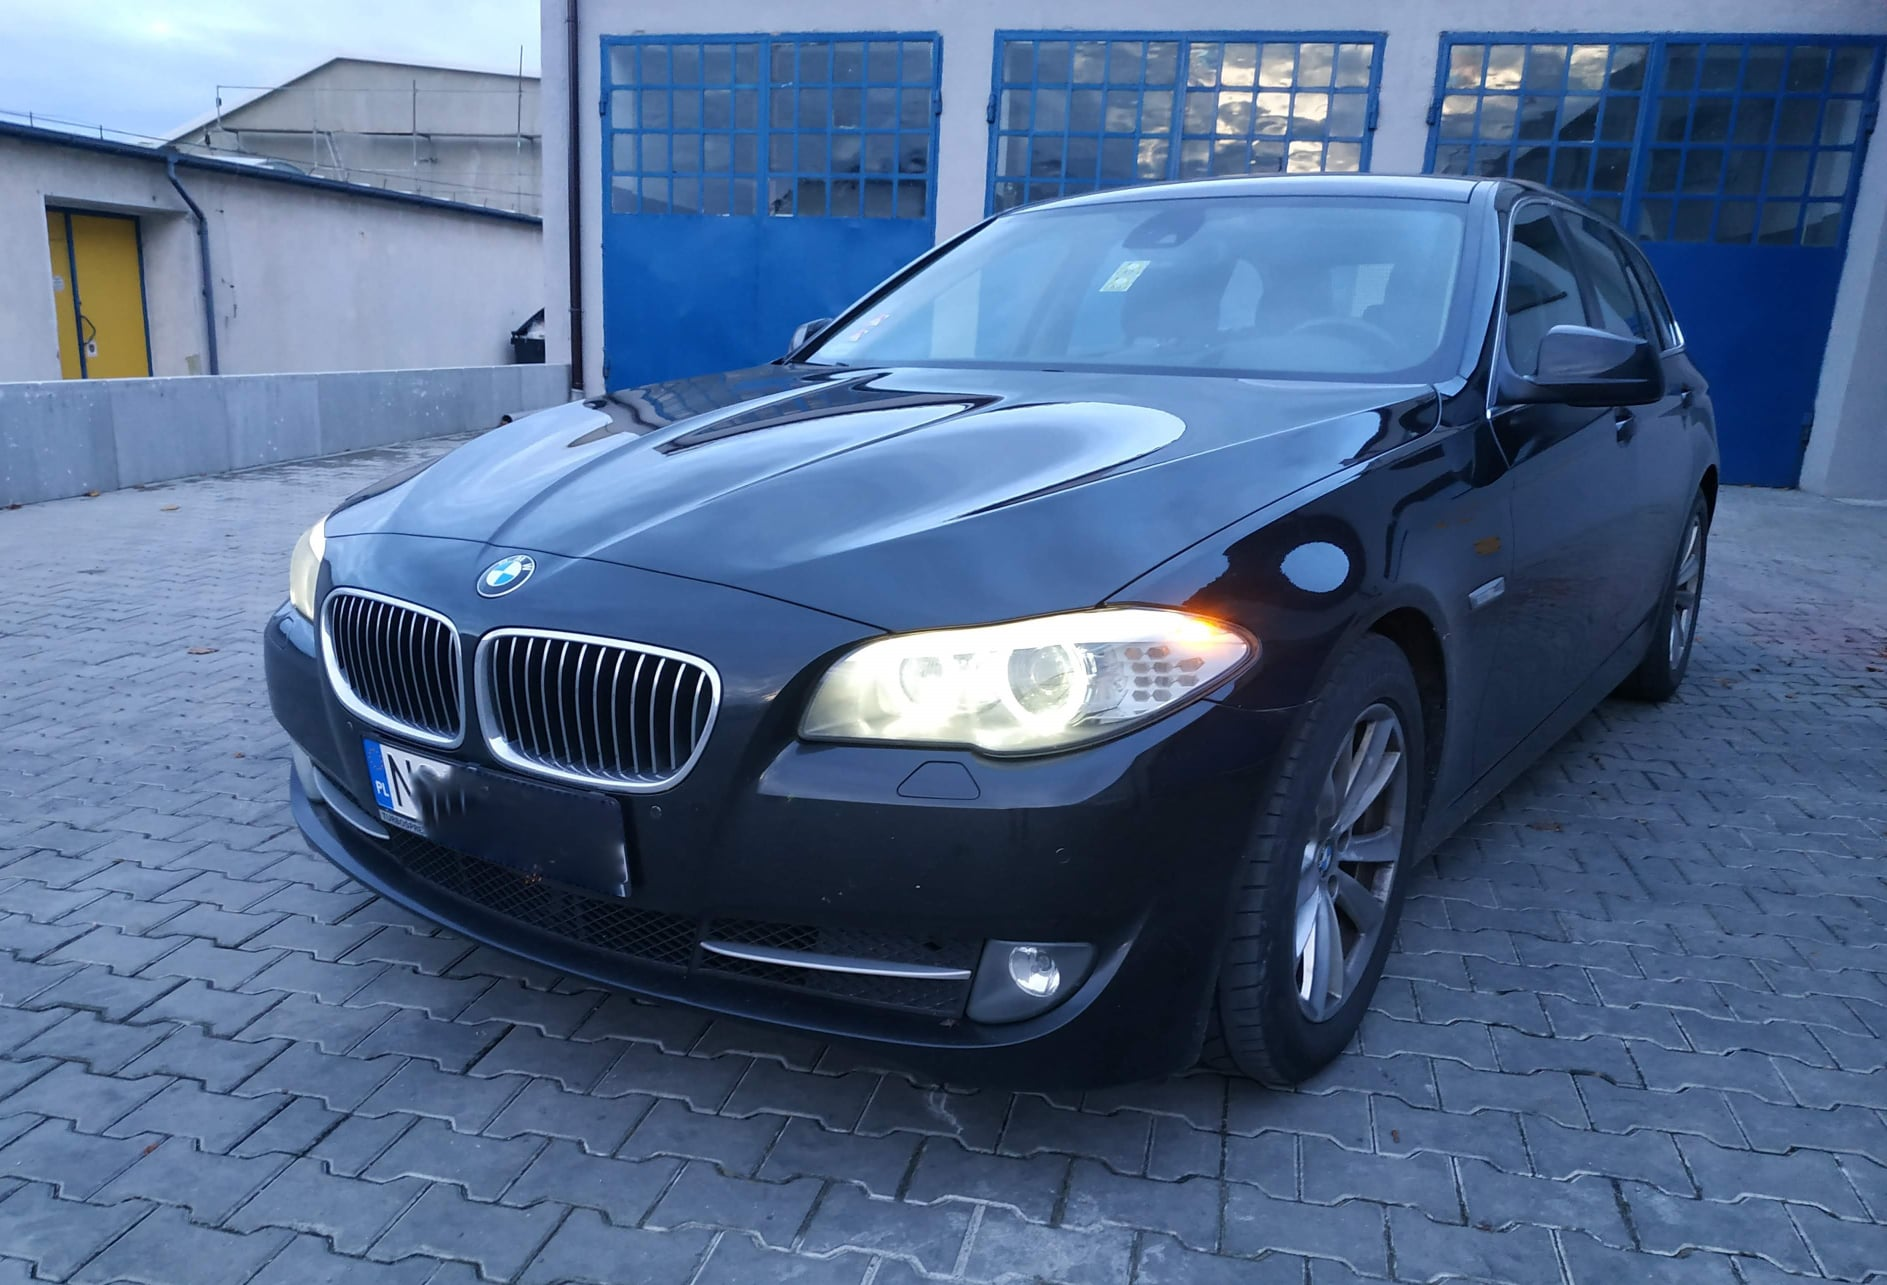 BMW F11 520d 184KM >> 224KM 440Nm